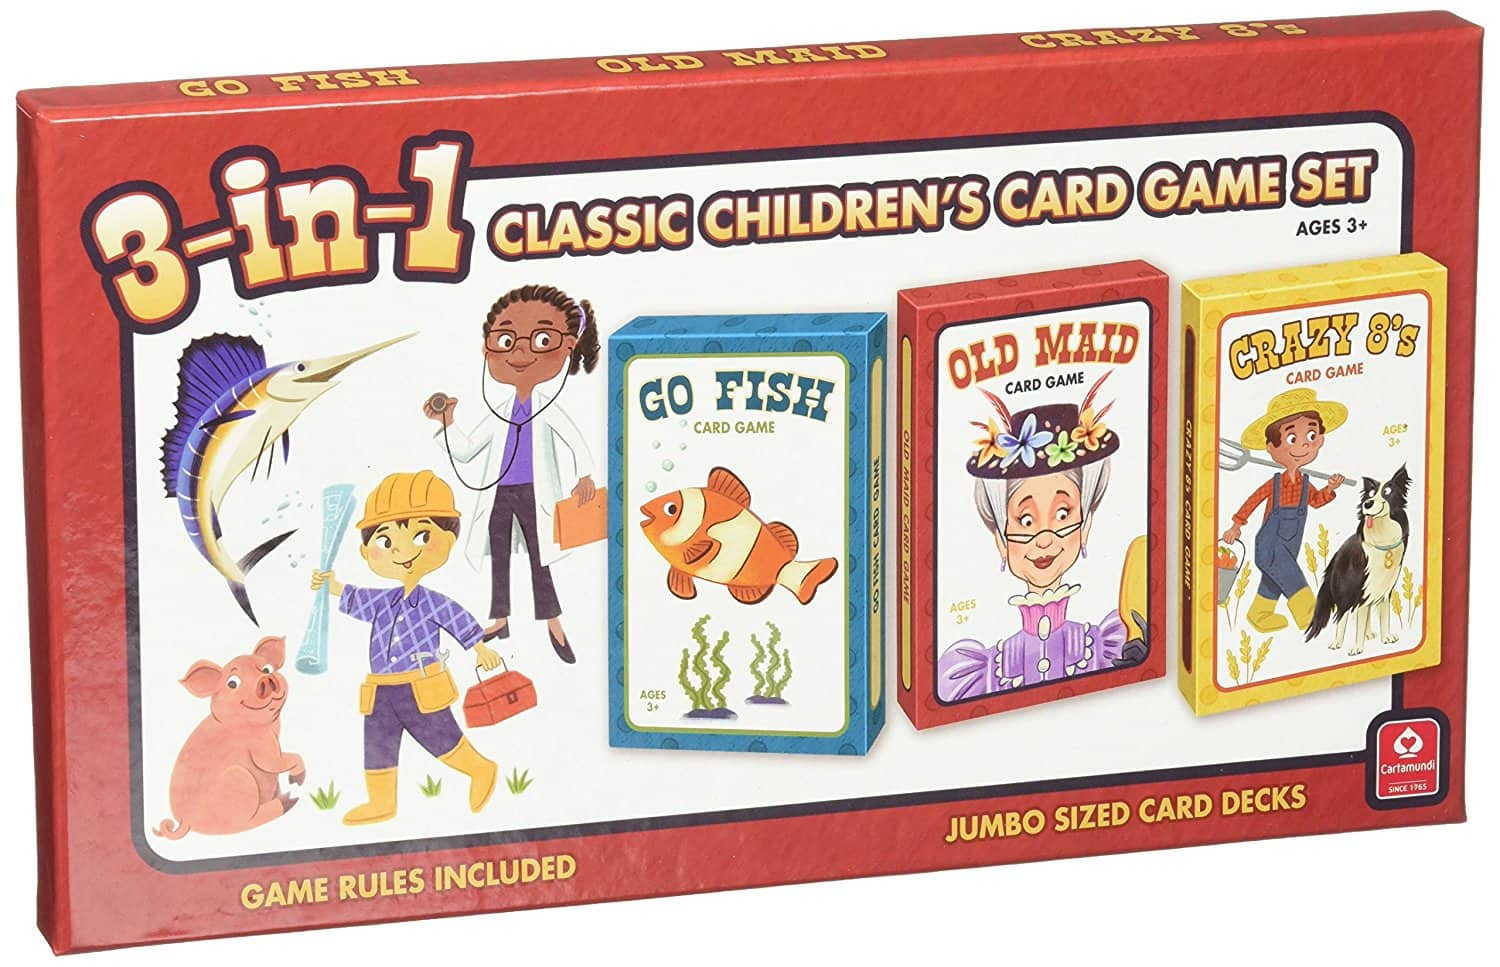 add-on item: Cartamundi USA 3-in-1 Classic Children's Card Game Set, $2.60